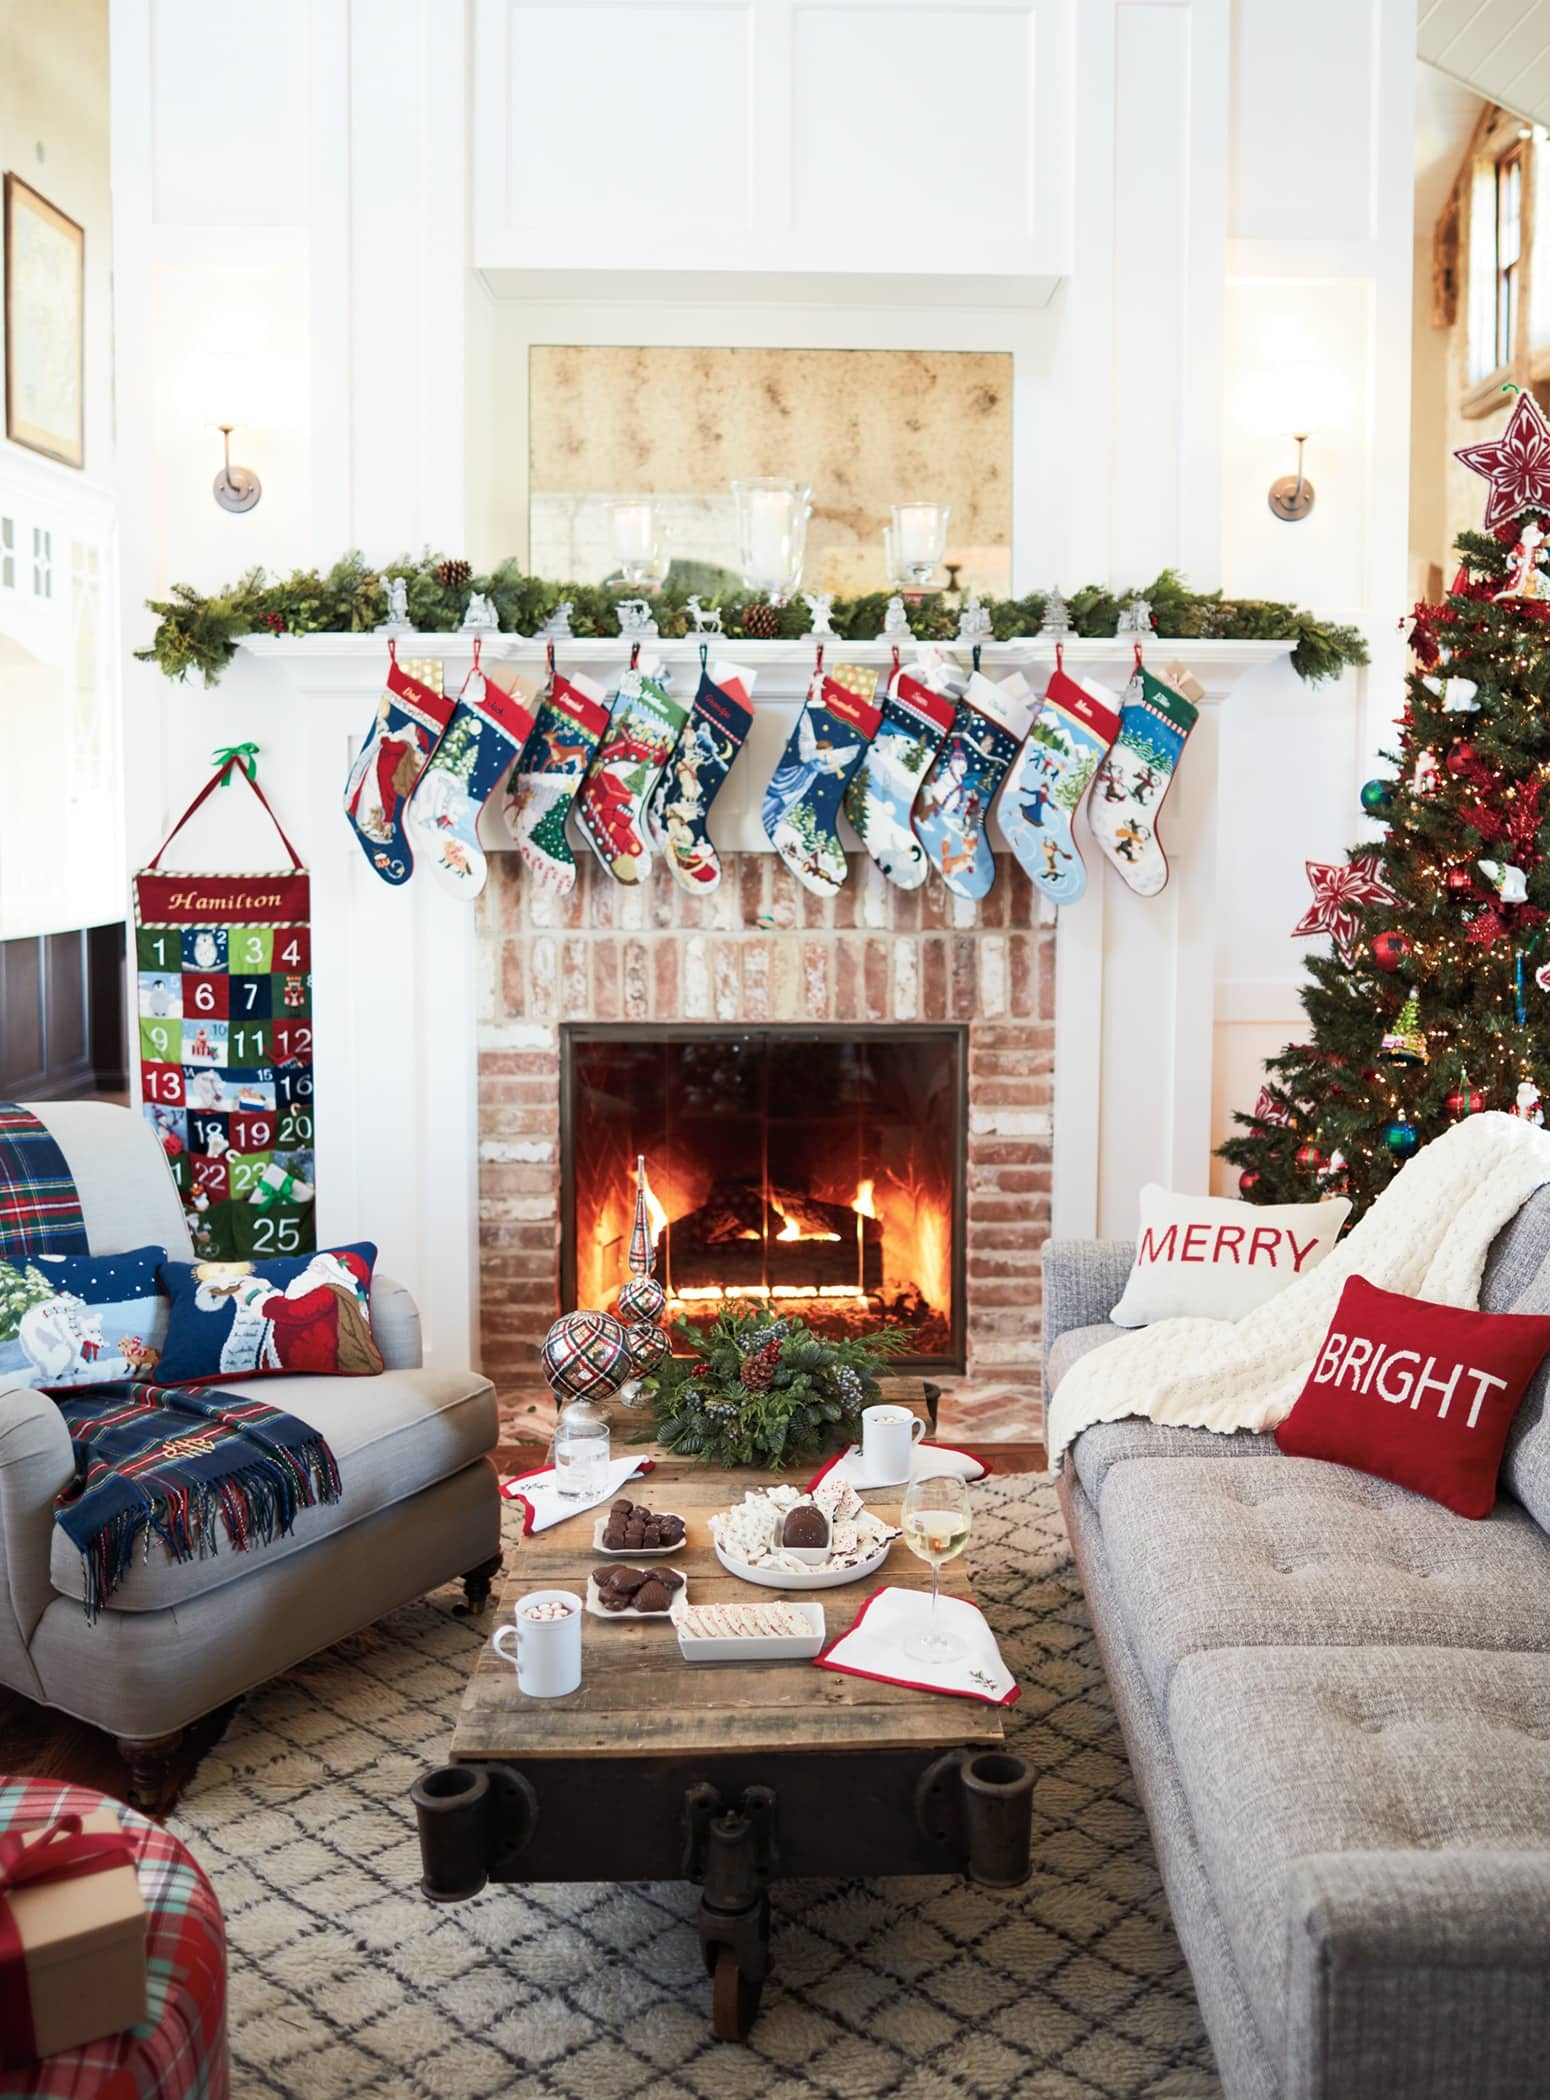 Celebrate the holiday season, Lands' End style ~ Lands' End discounts and giveaway